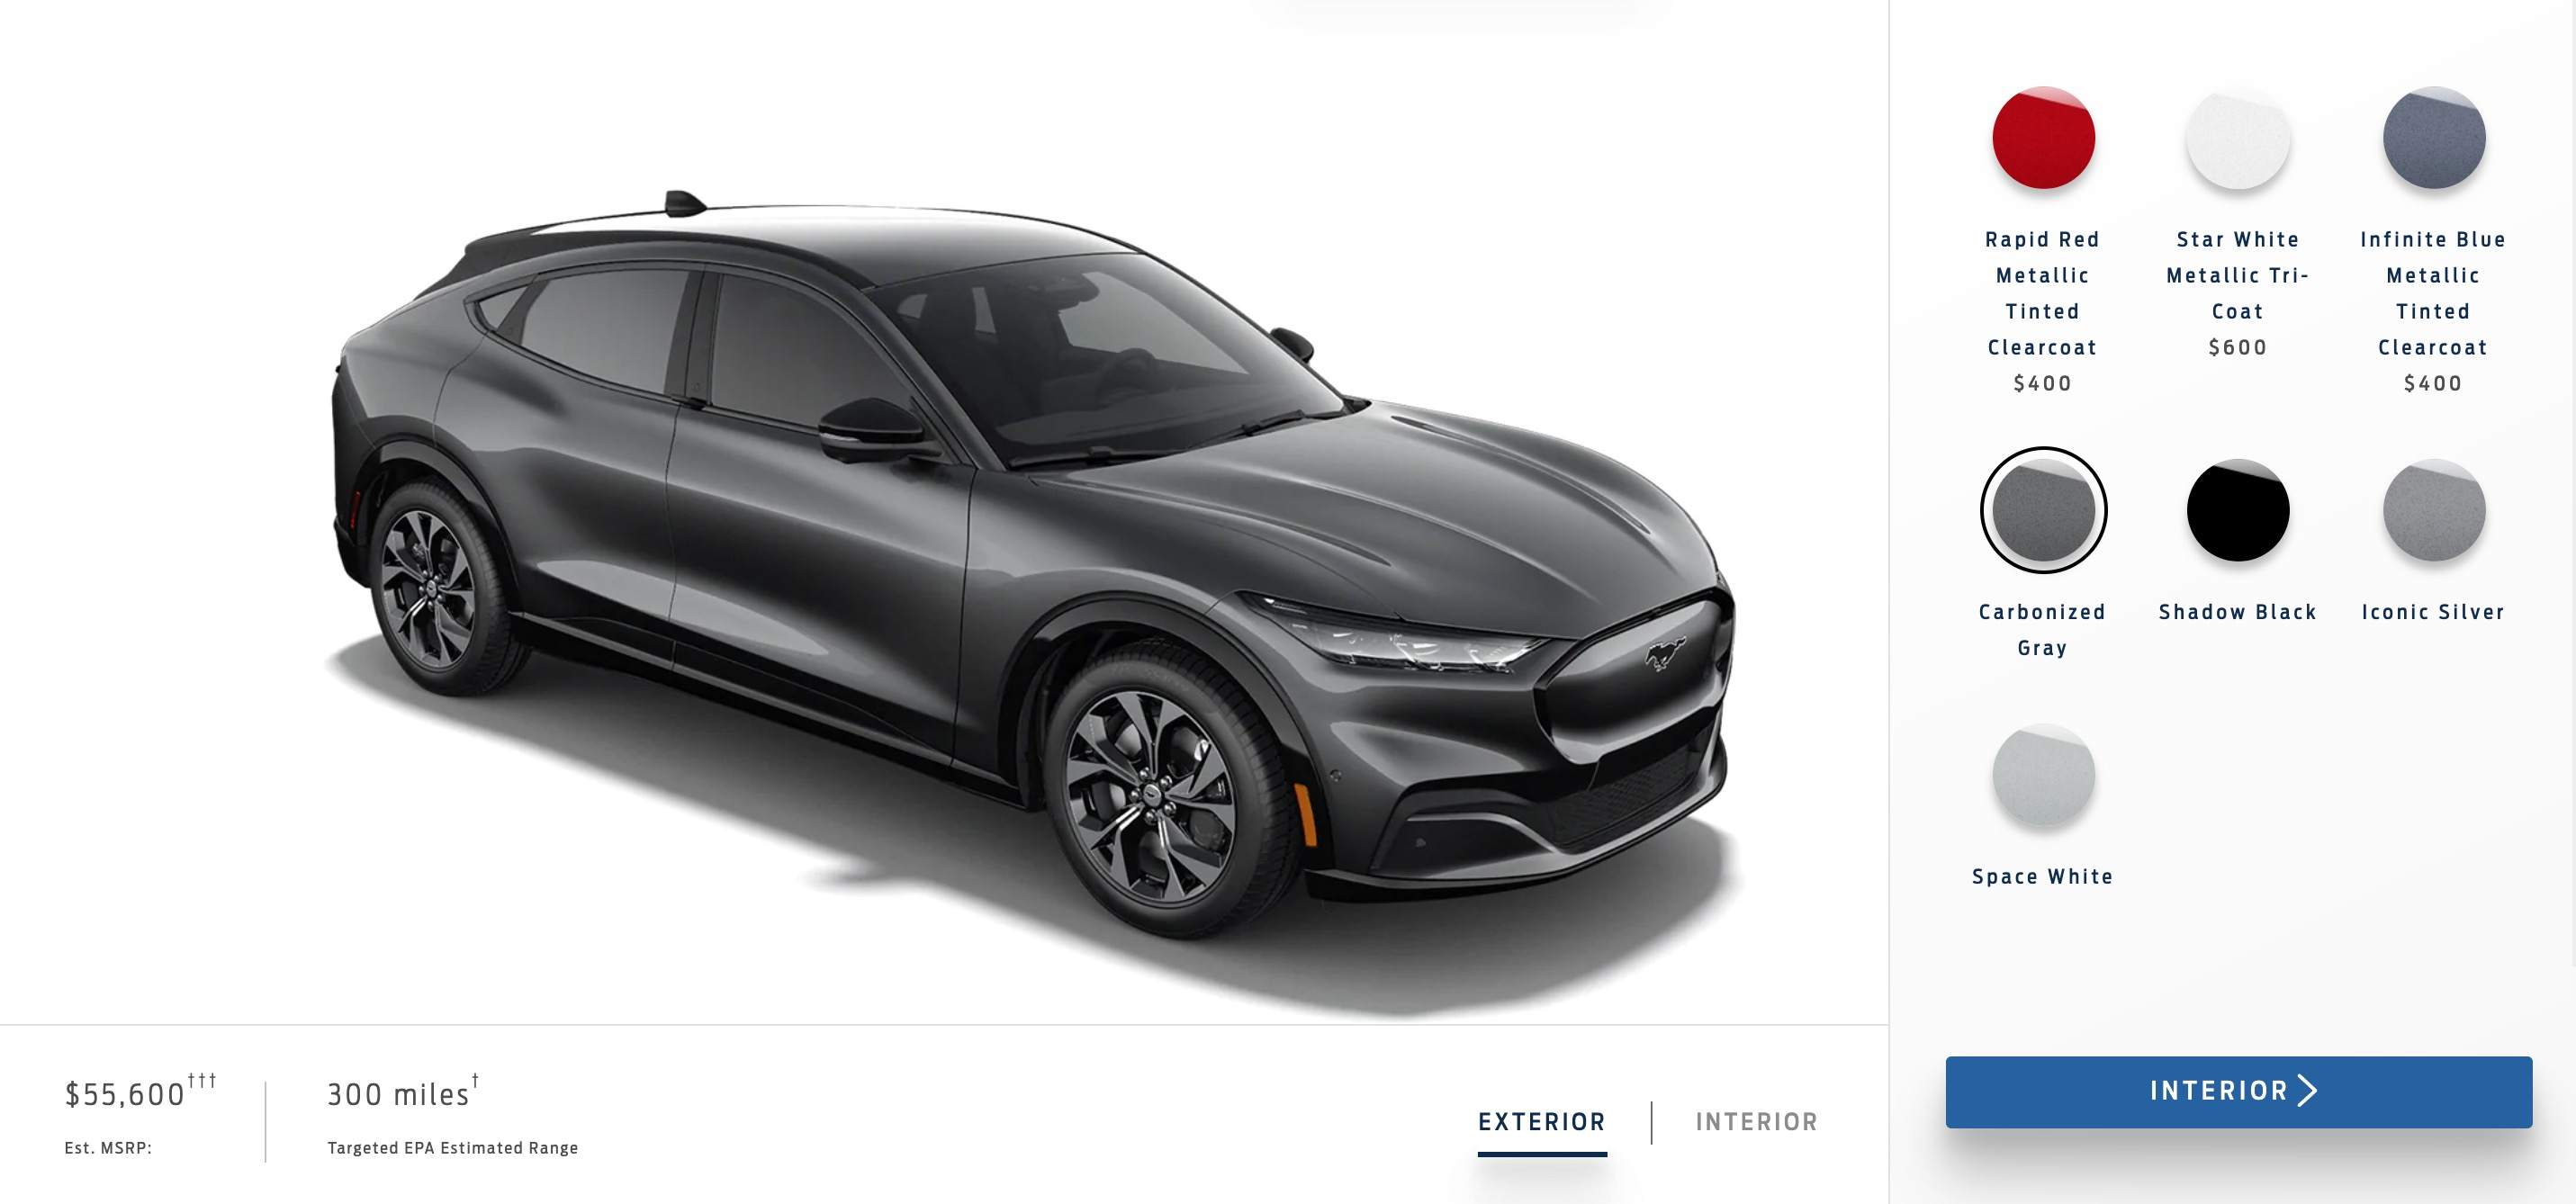 Ford launches reservation website for new Mustang Mach E for $500 - Electrek